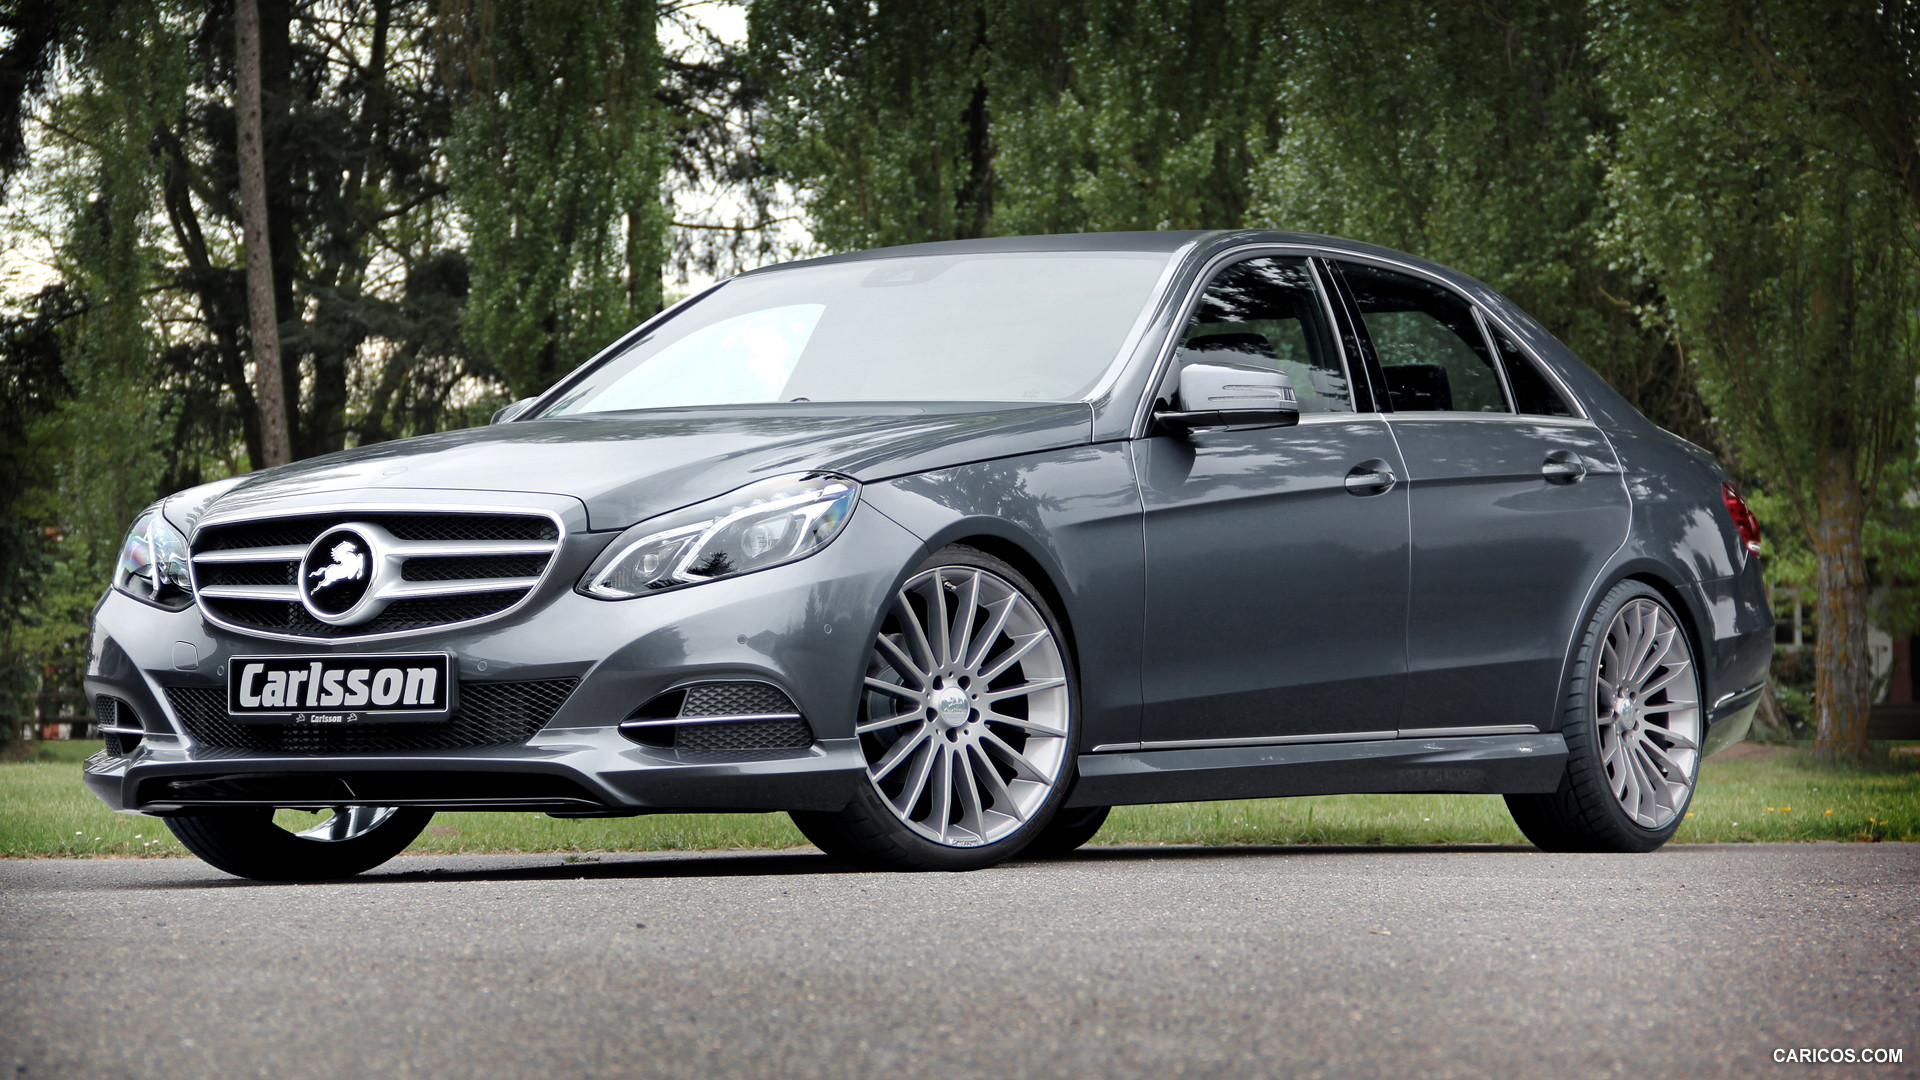 Carlsson E-Class photo 120782